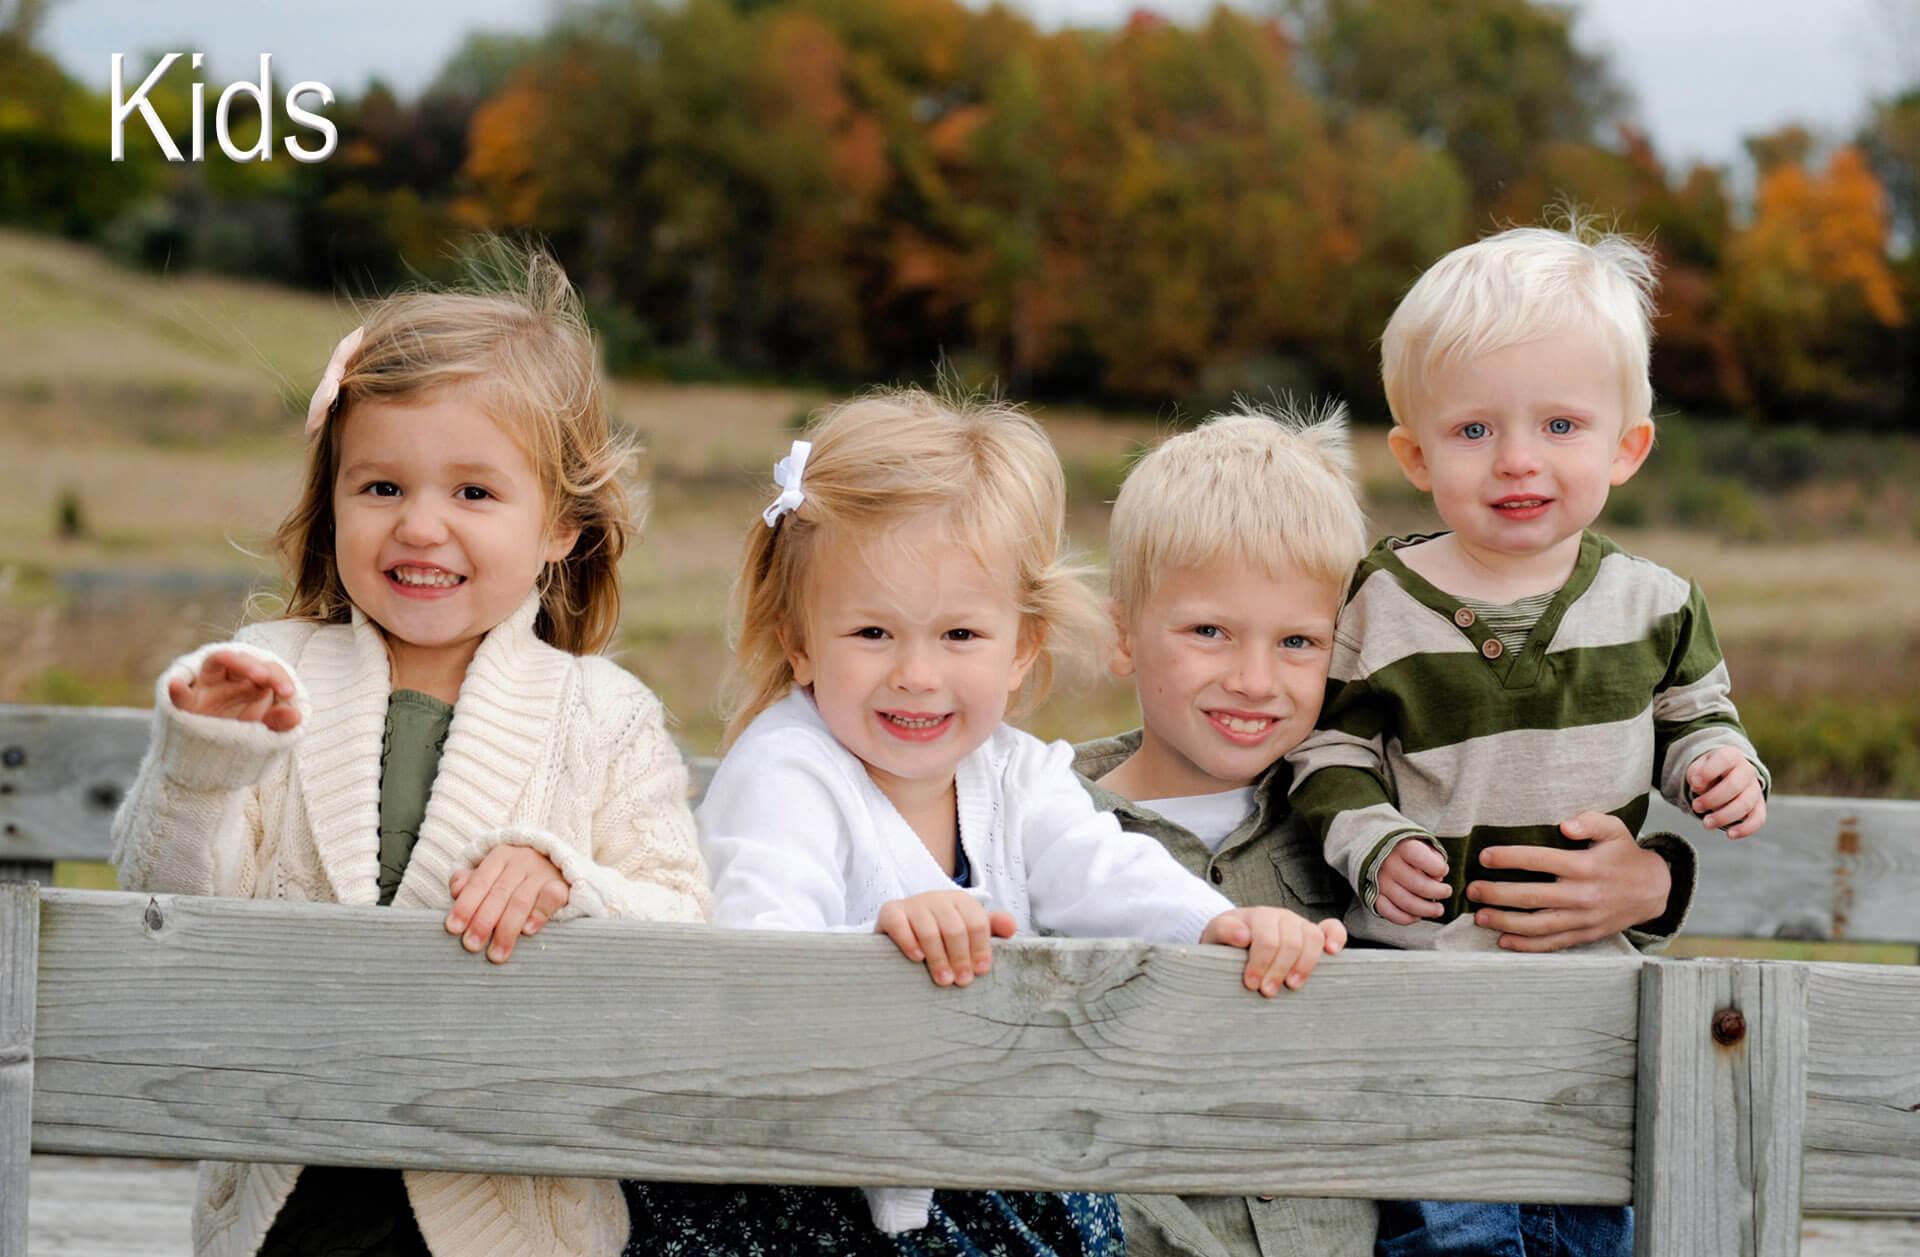 Fun family photography for the budget conscious metro Detroit, Michigan family.